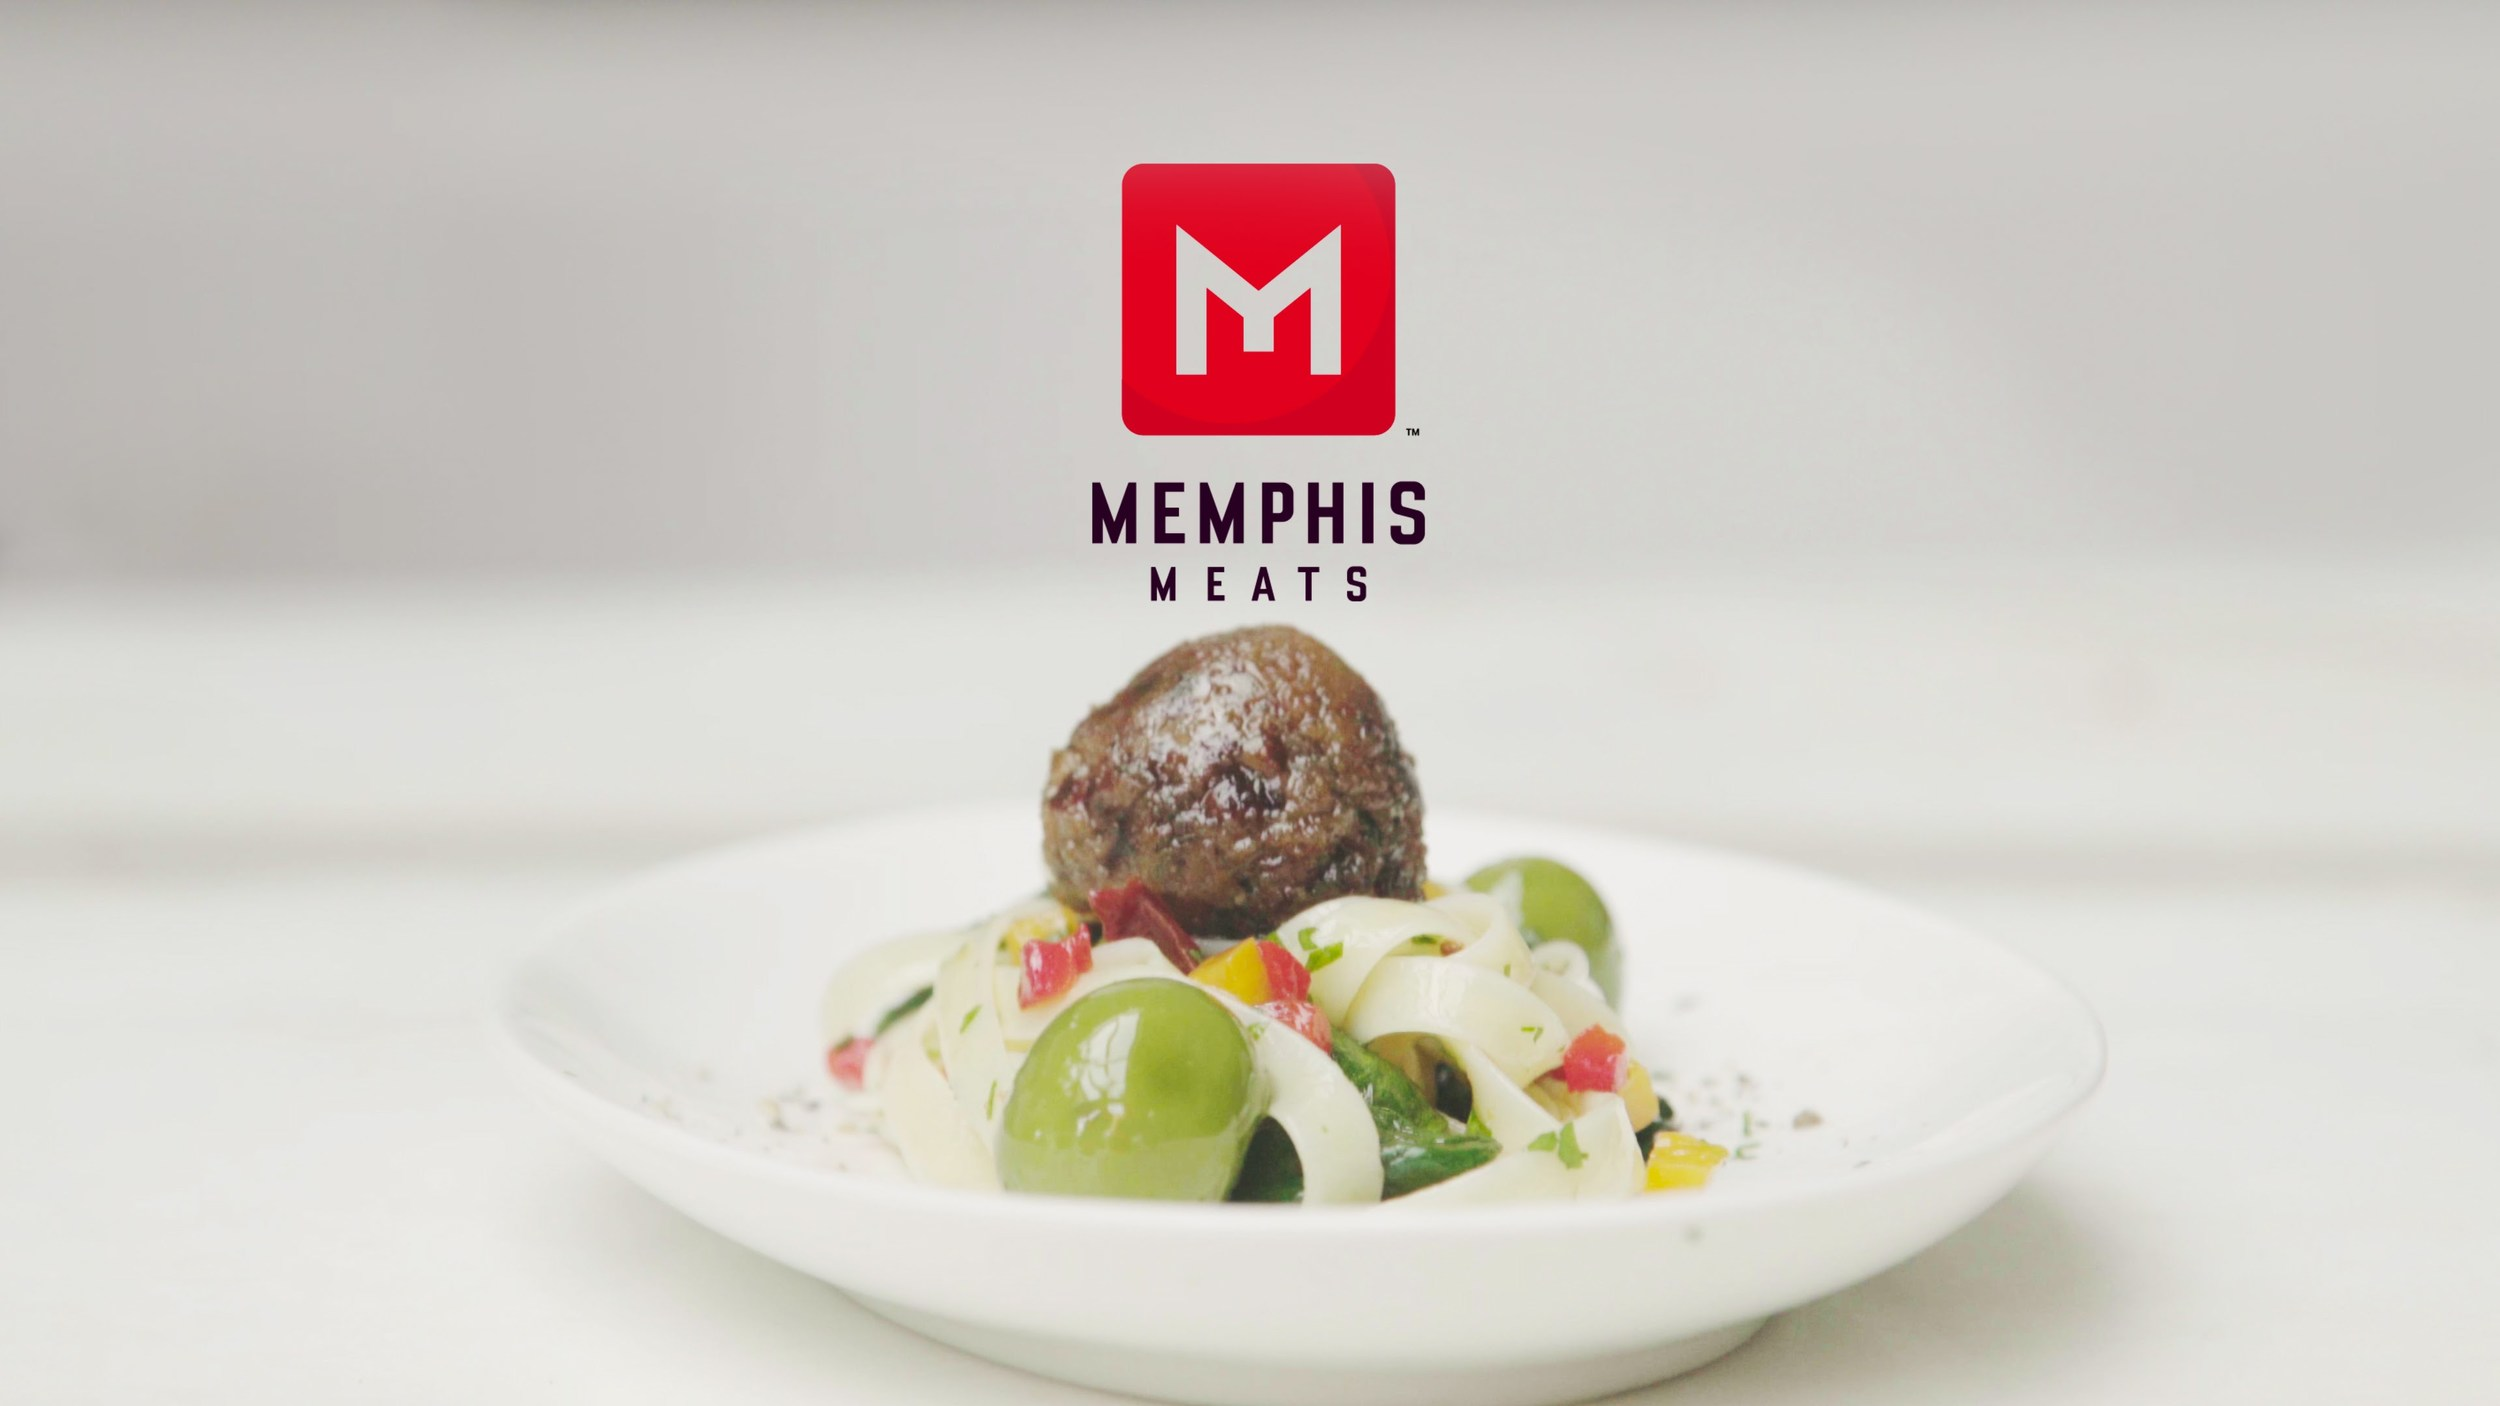 The first meatball made from cultured beef by Memphis Meats, co-founded by Uma Valeti, MD & William Clem, Ph.D    Image Source: Memphis Meats